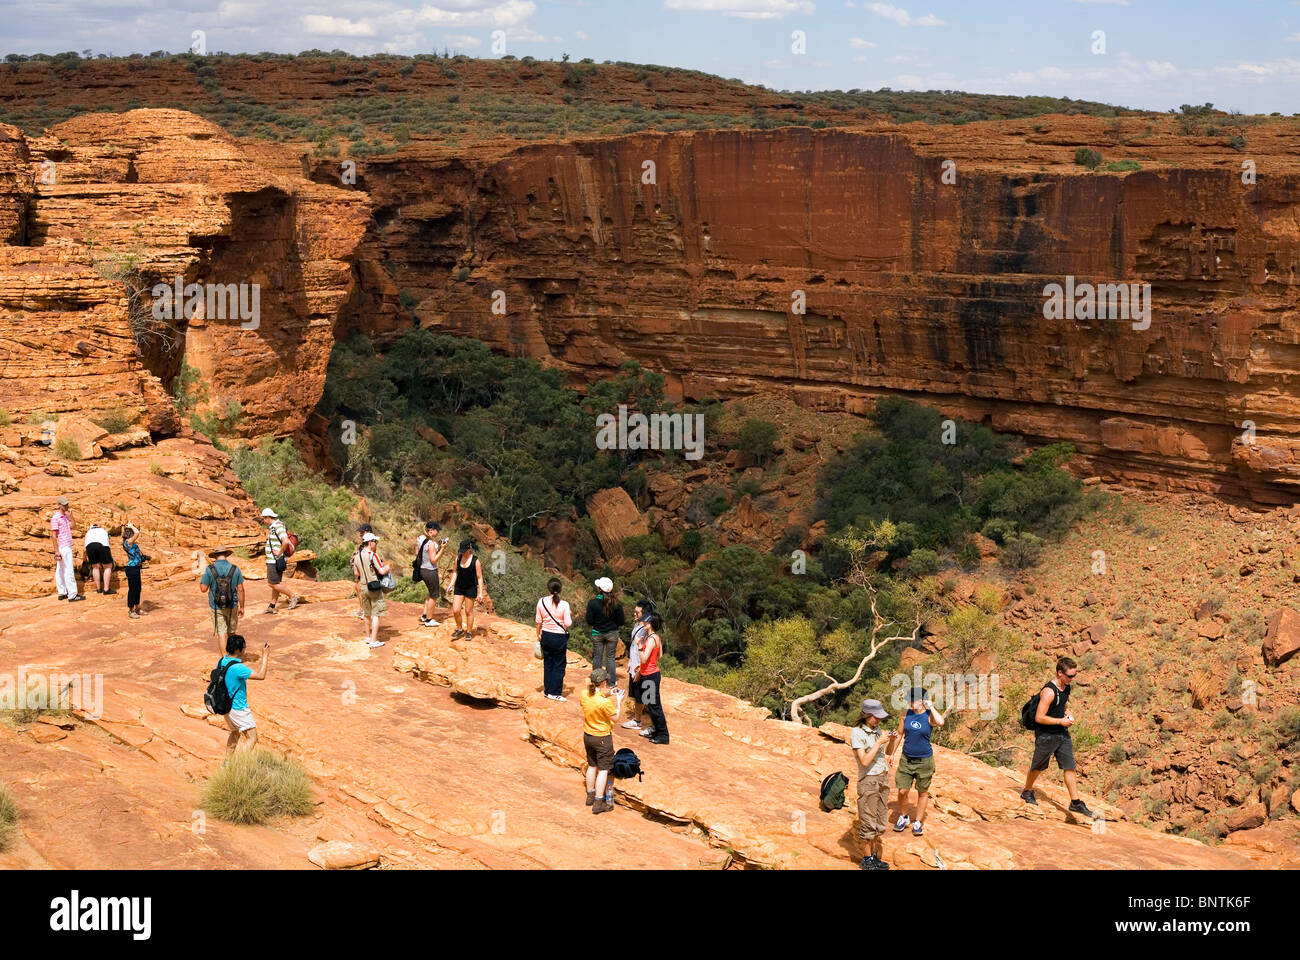 Tourists on the edge of the canyon. Watarrka (Kings Canyon) National Park, Northern Territory, AUSTRALIA. - Stock Image